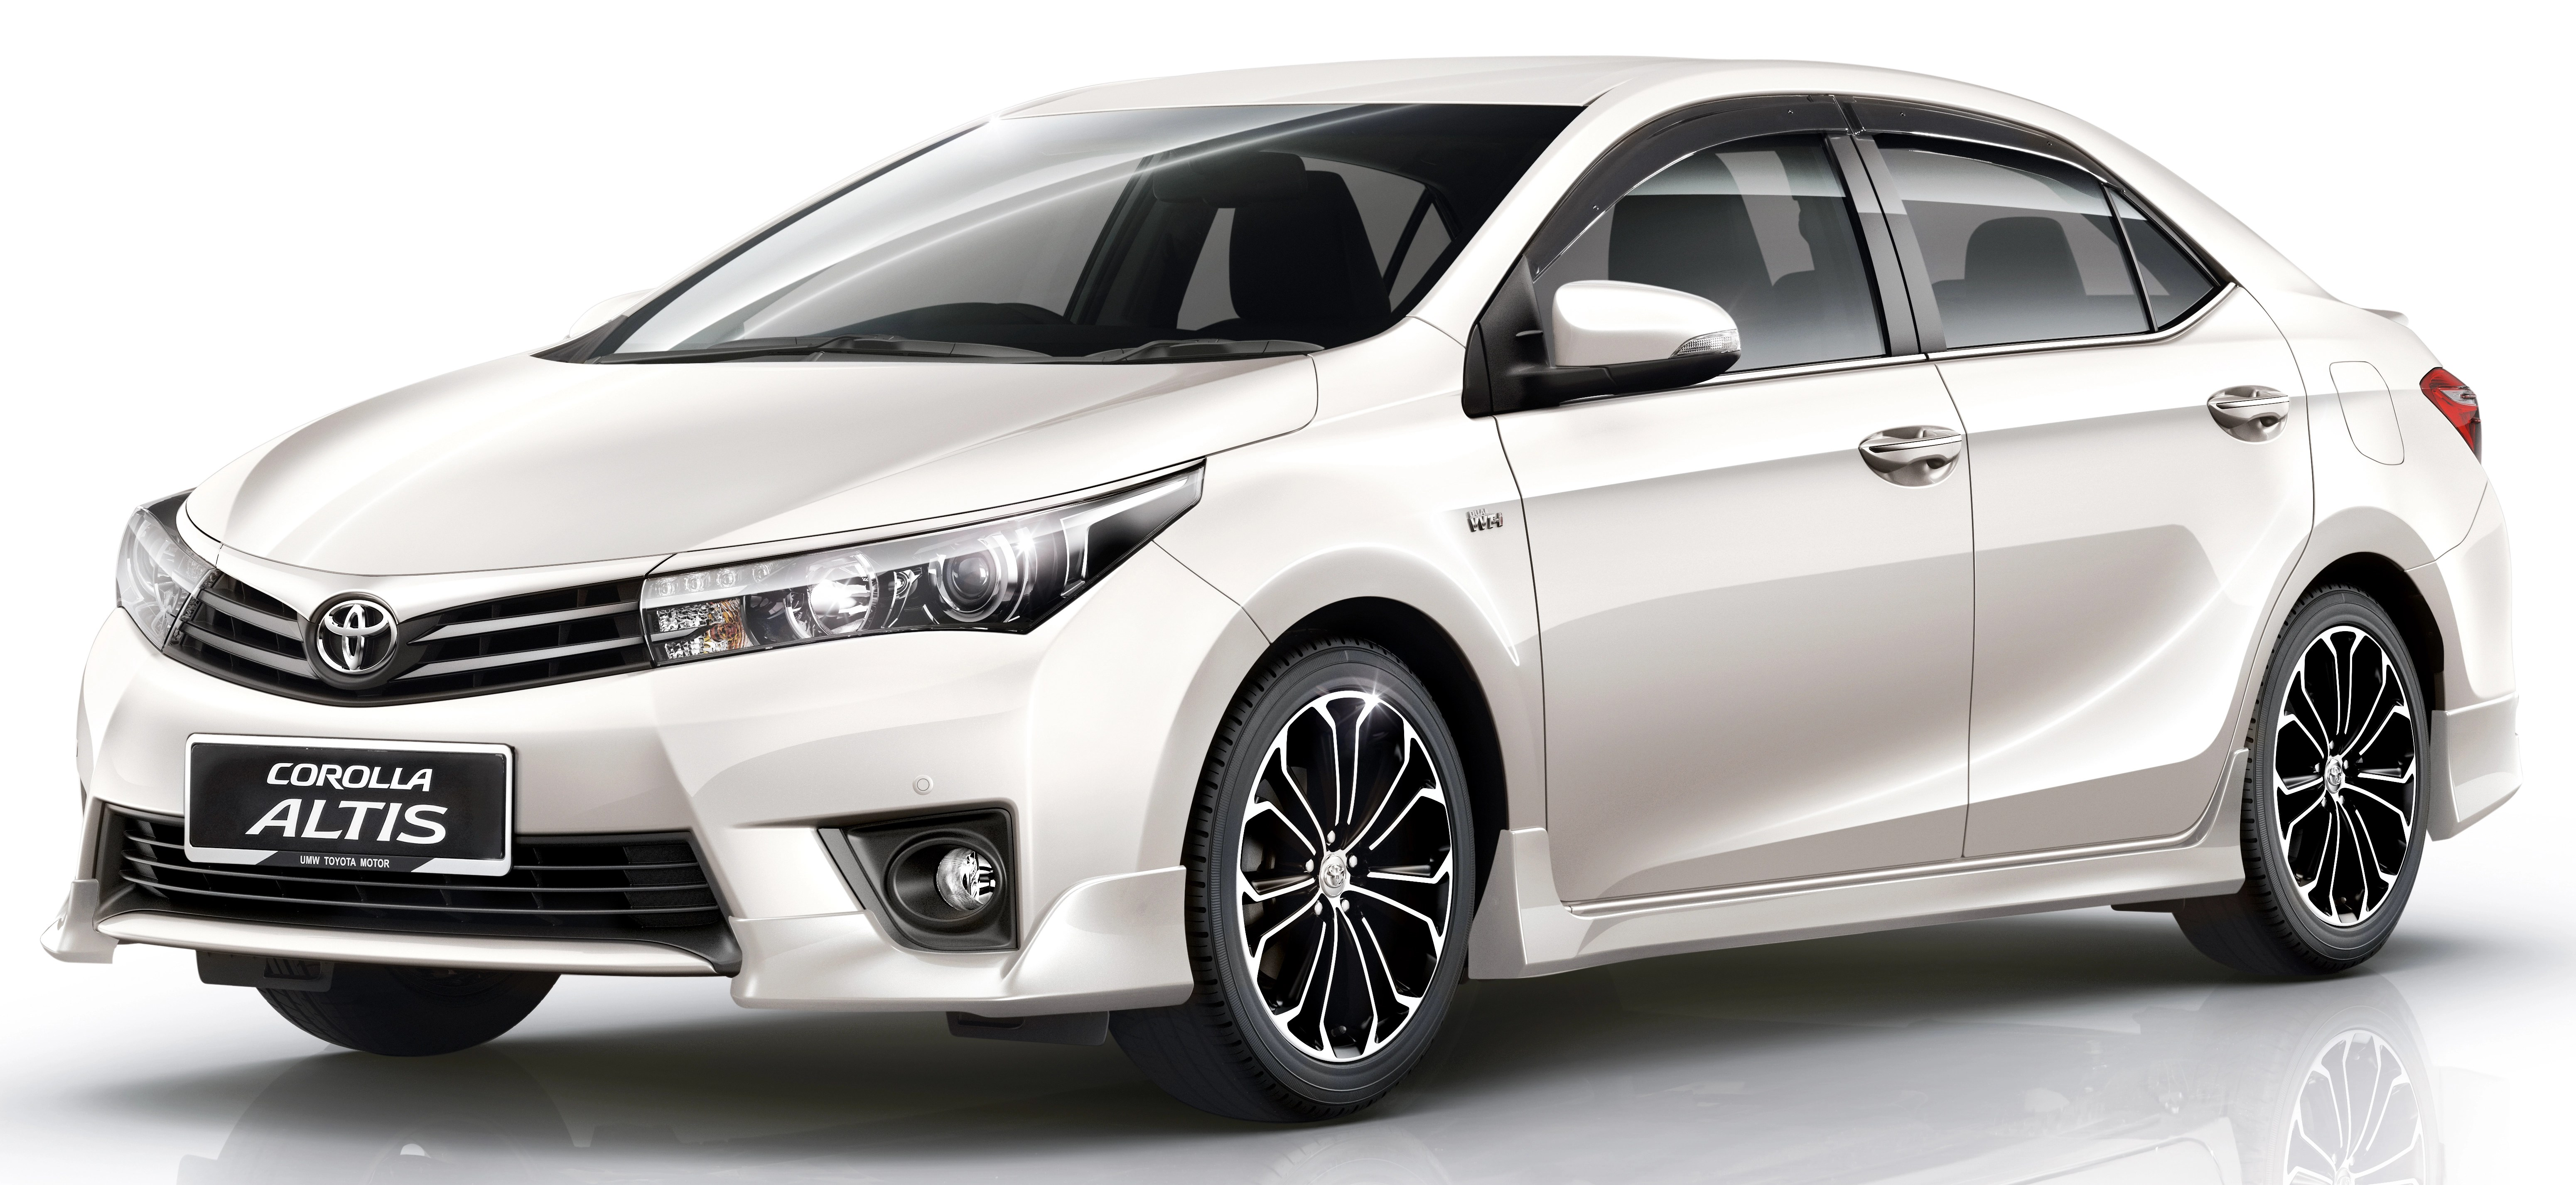 new corolla altis on road price toyota yaris trd sportivo modif 2014 malaysian prices confirmed